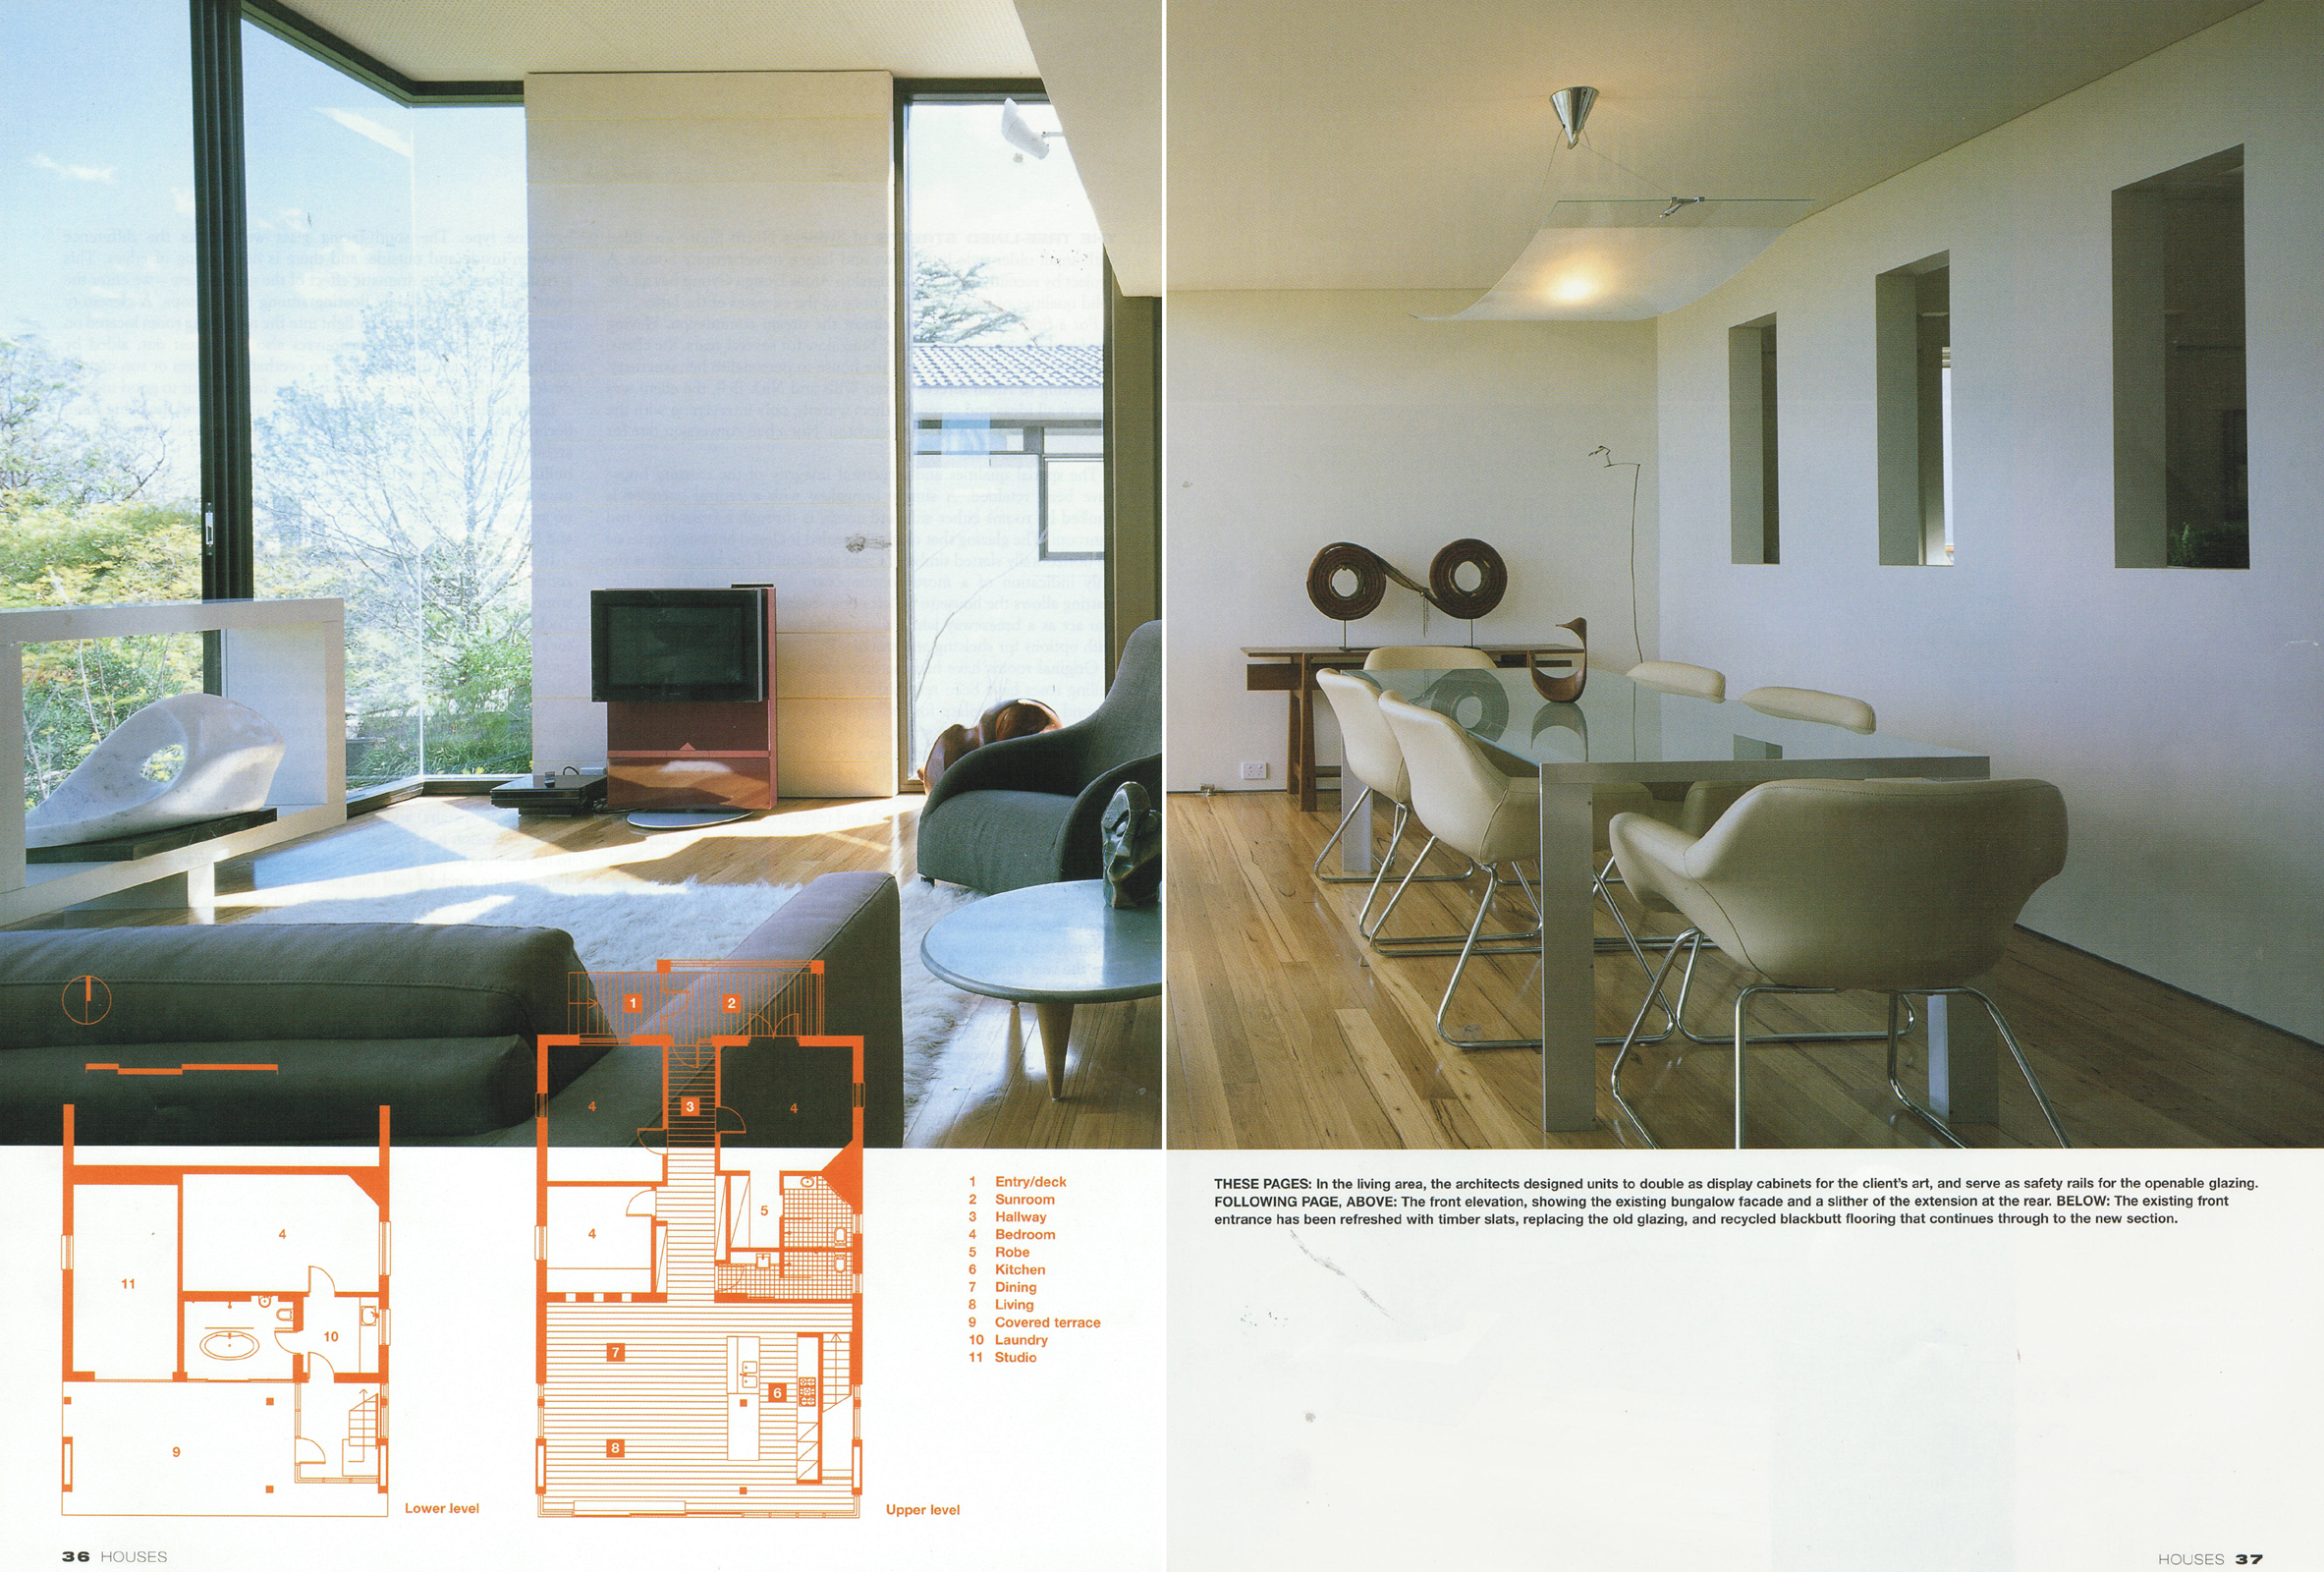 houses pages 36 & 37.jpg